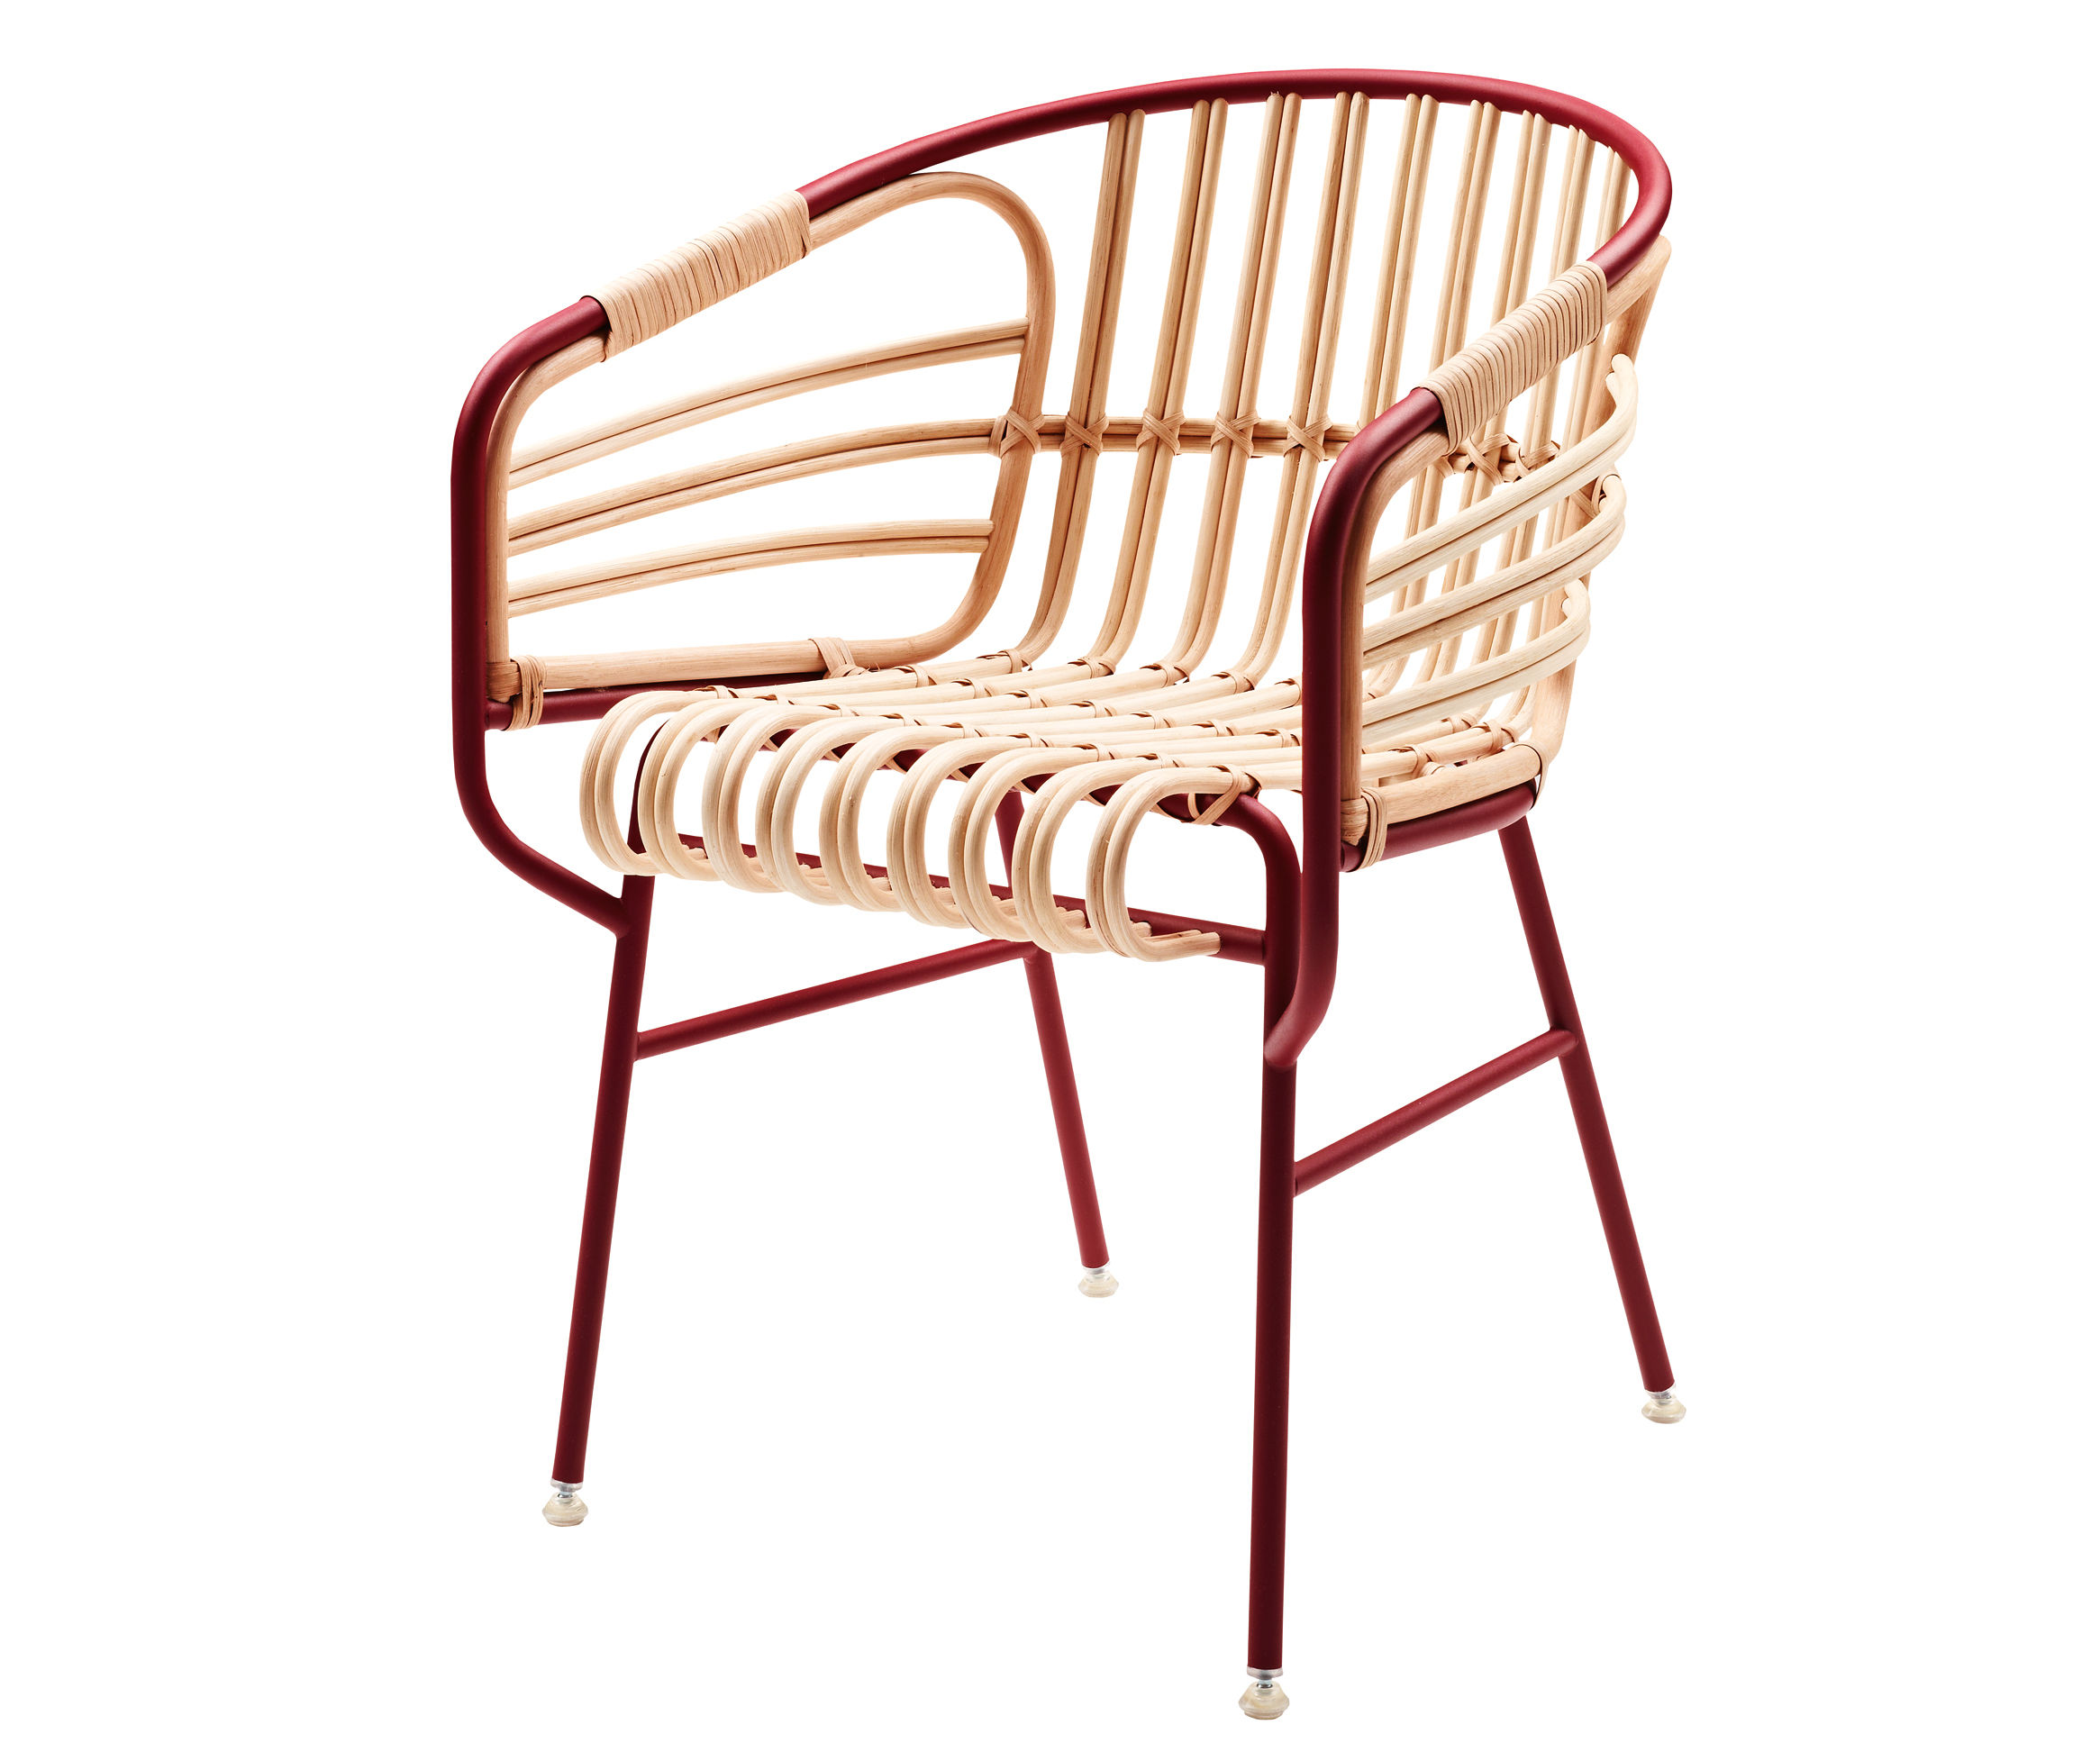 Furniture - Armchairs - Raphia Armchair by Casamania - Bordeaux - Cane, Varnished metal